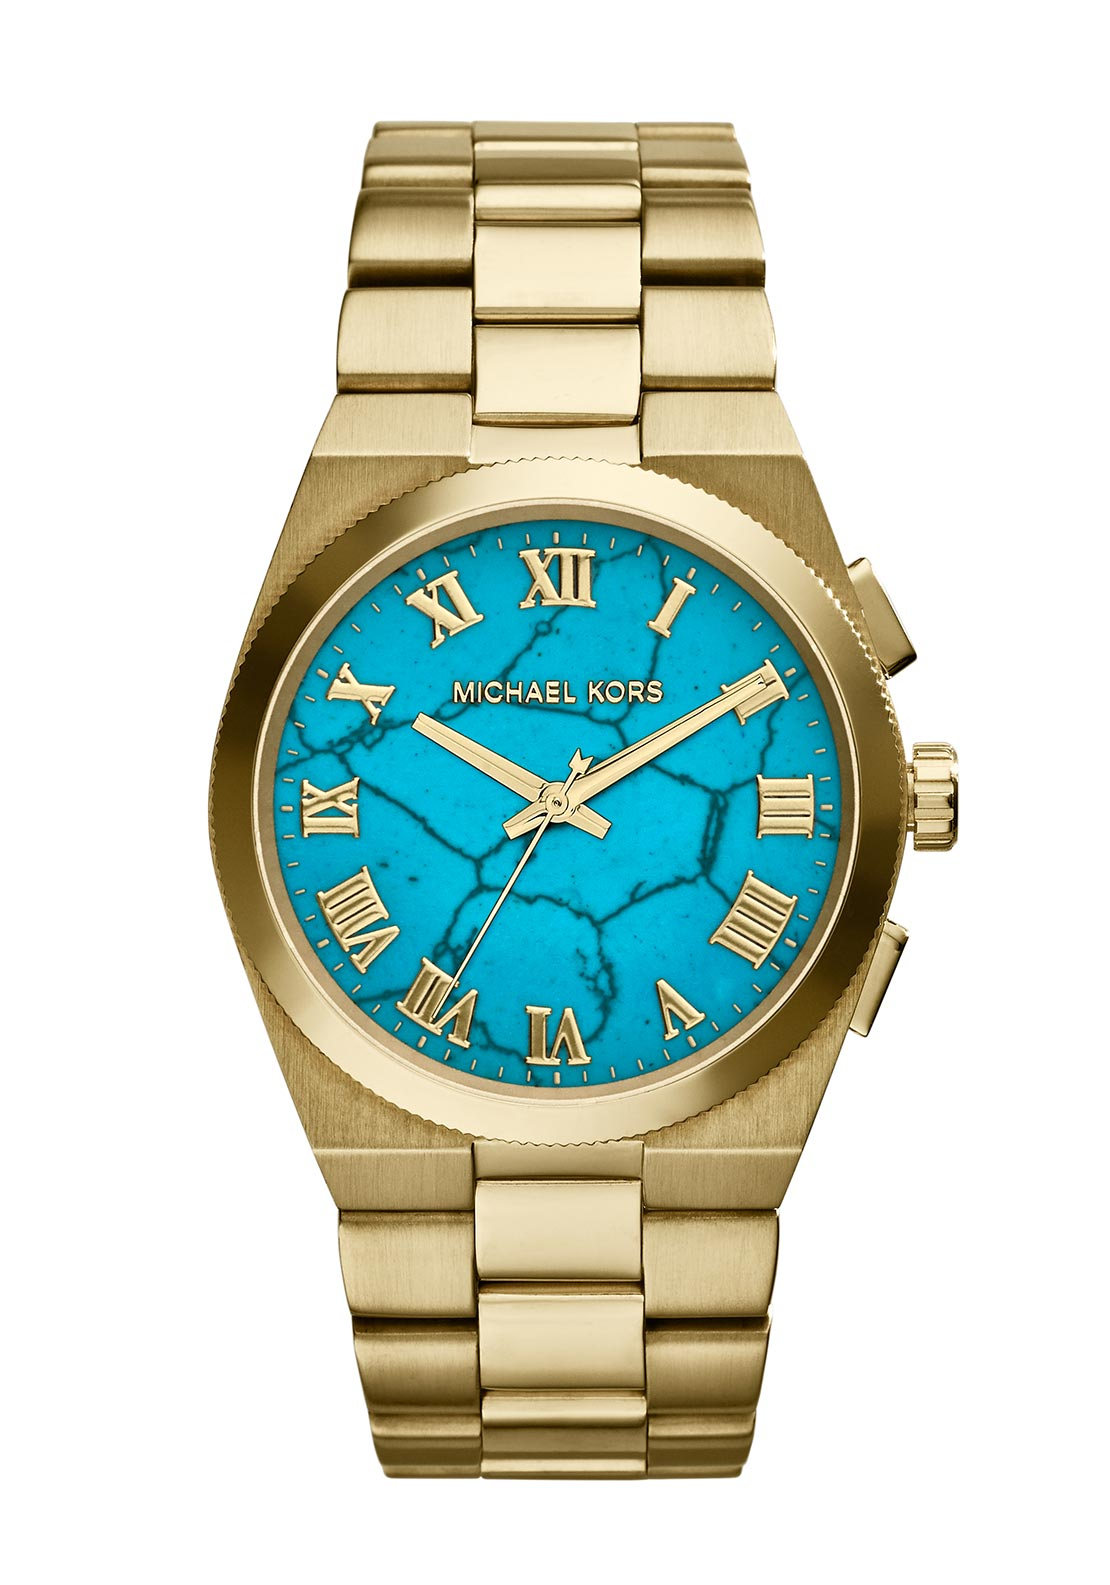 Michael Kors Womens Channing Gold Tone Watch with Turquoise Face